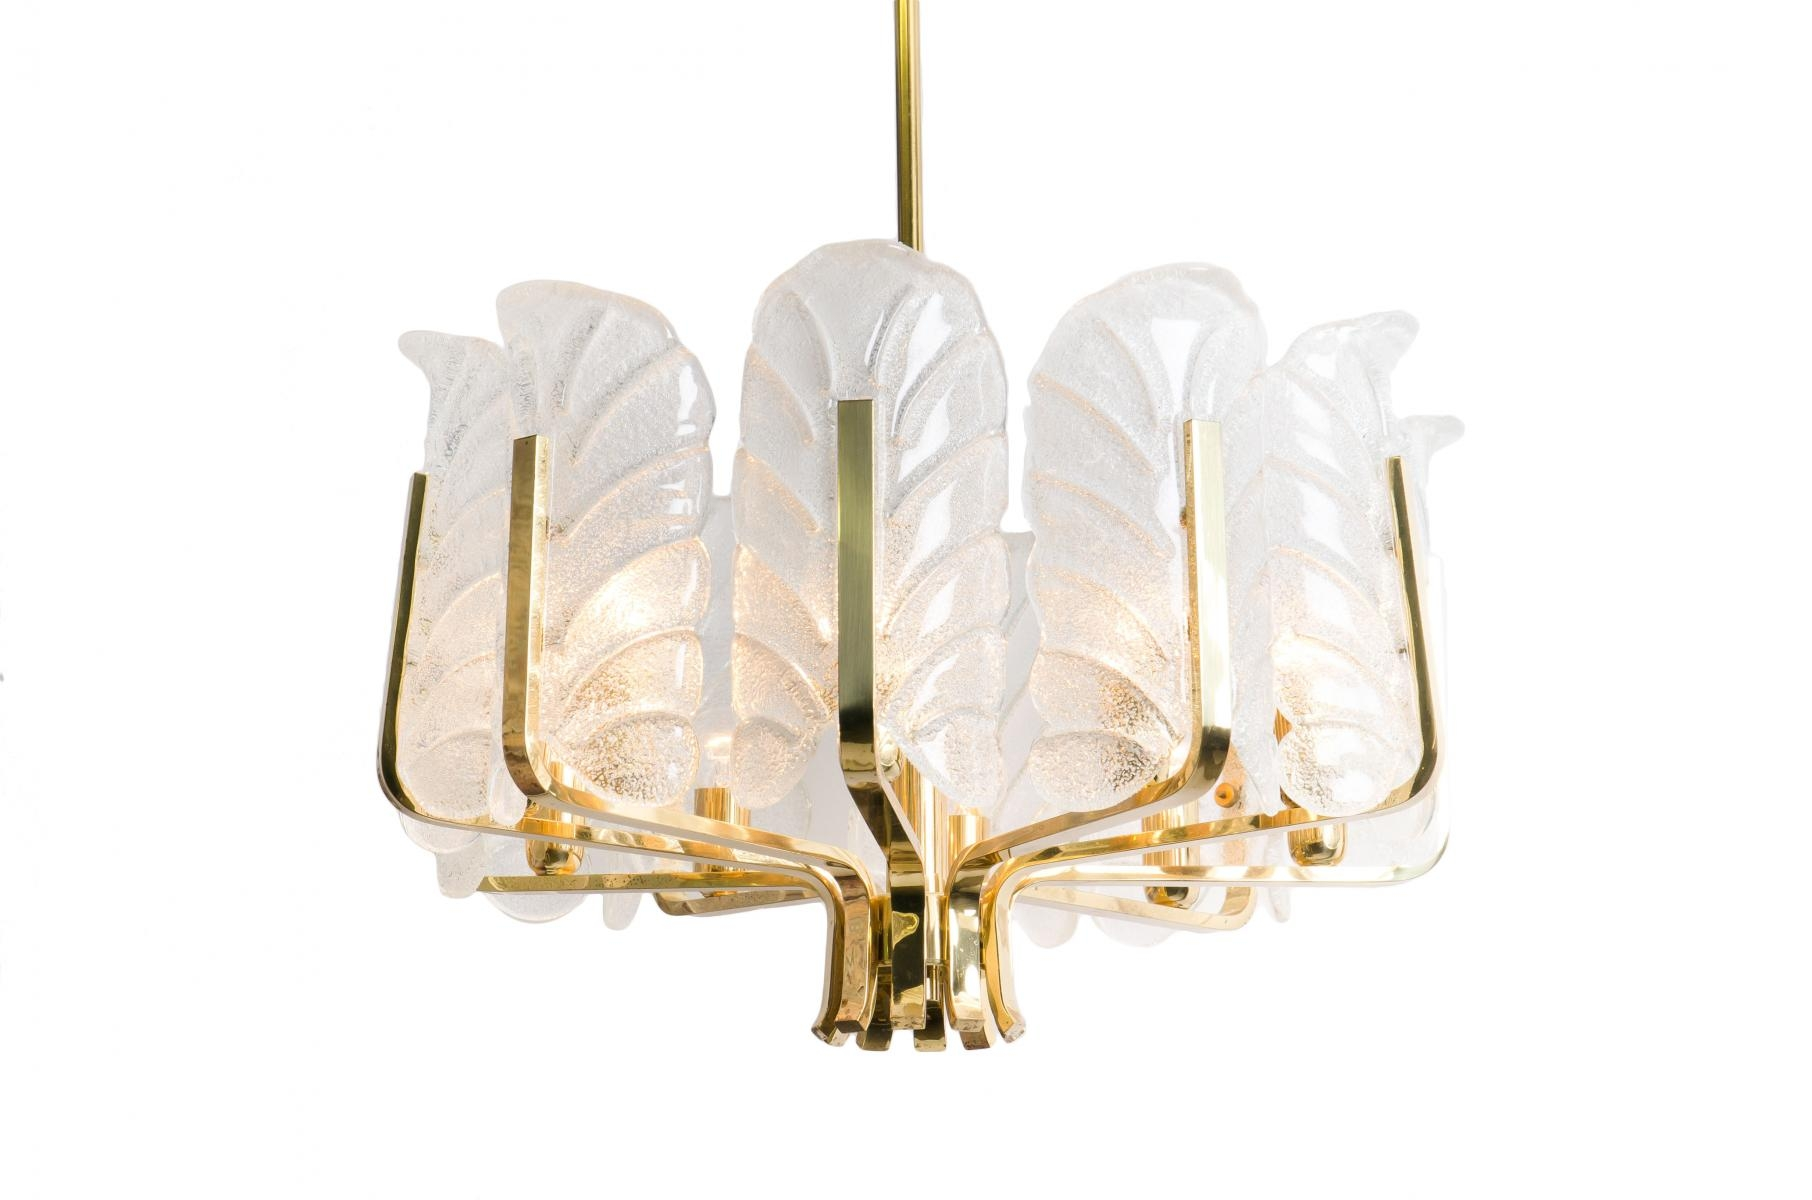 Glass Brass Chandeliers Carl Fagerlund For Orrefors 1960s Within Brass Chandeliers (Image 7 of 15)